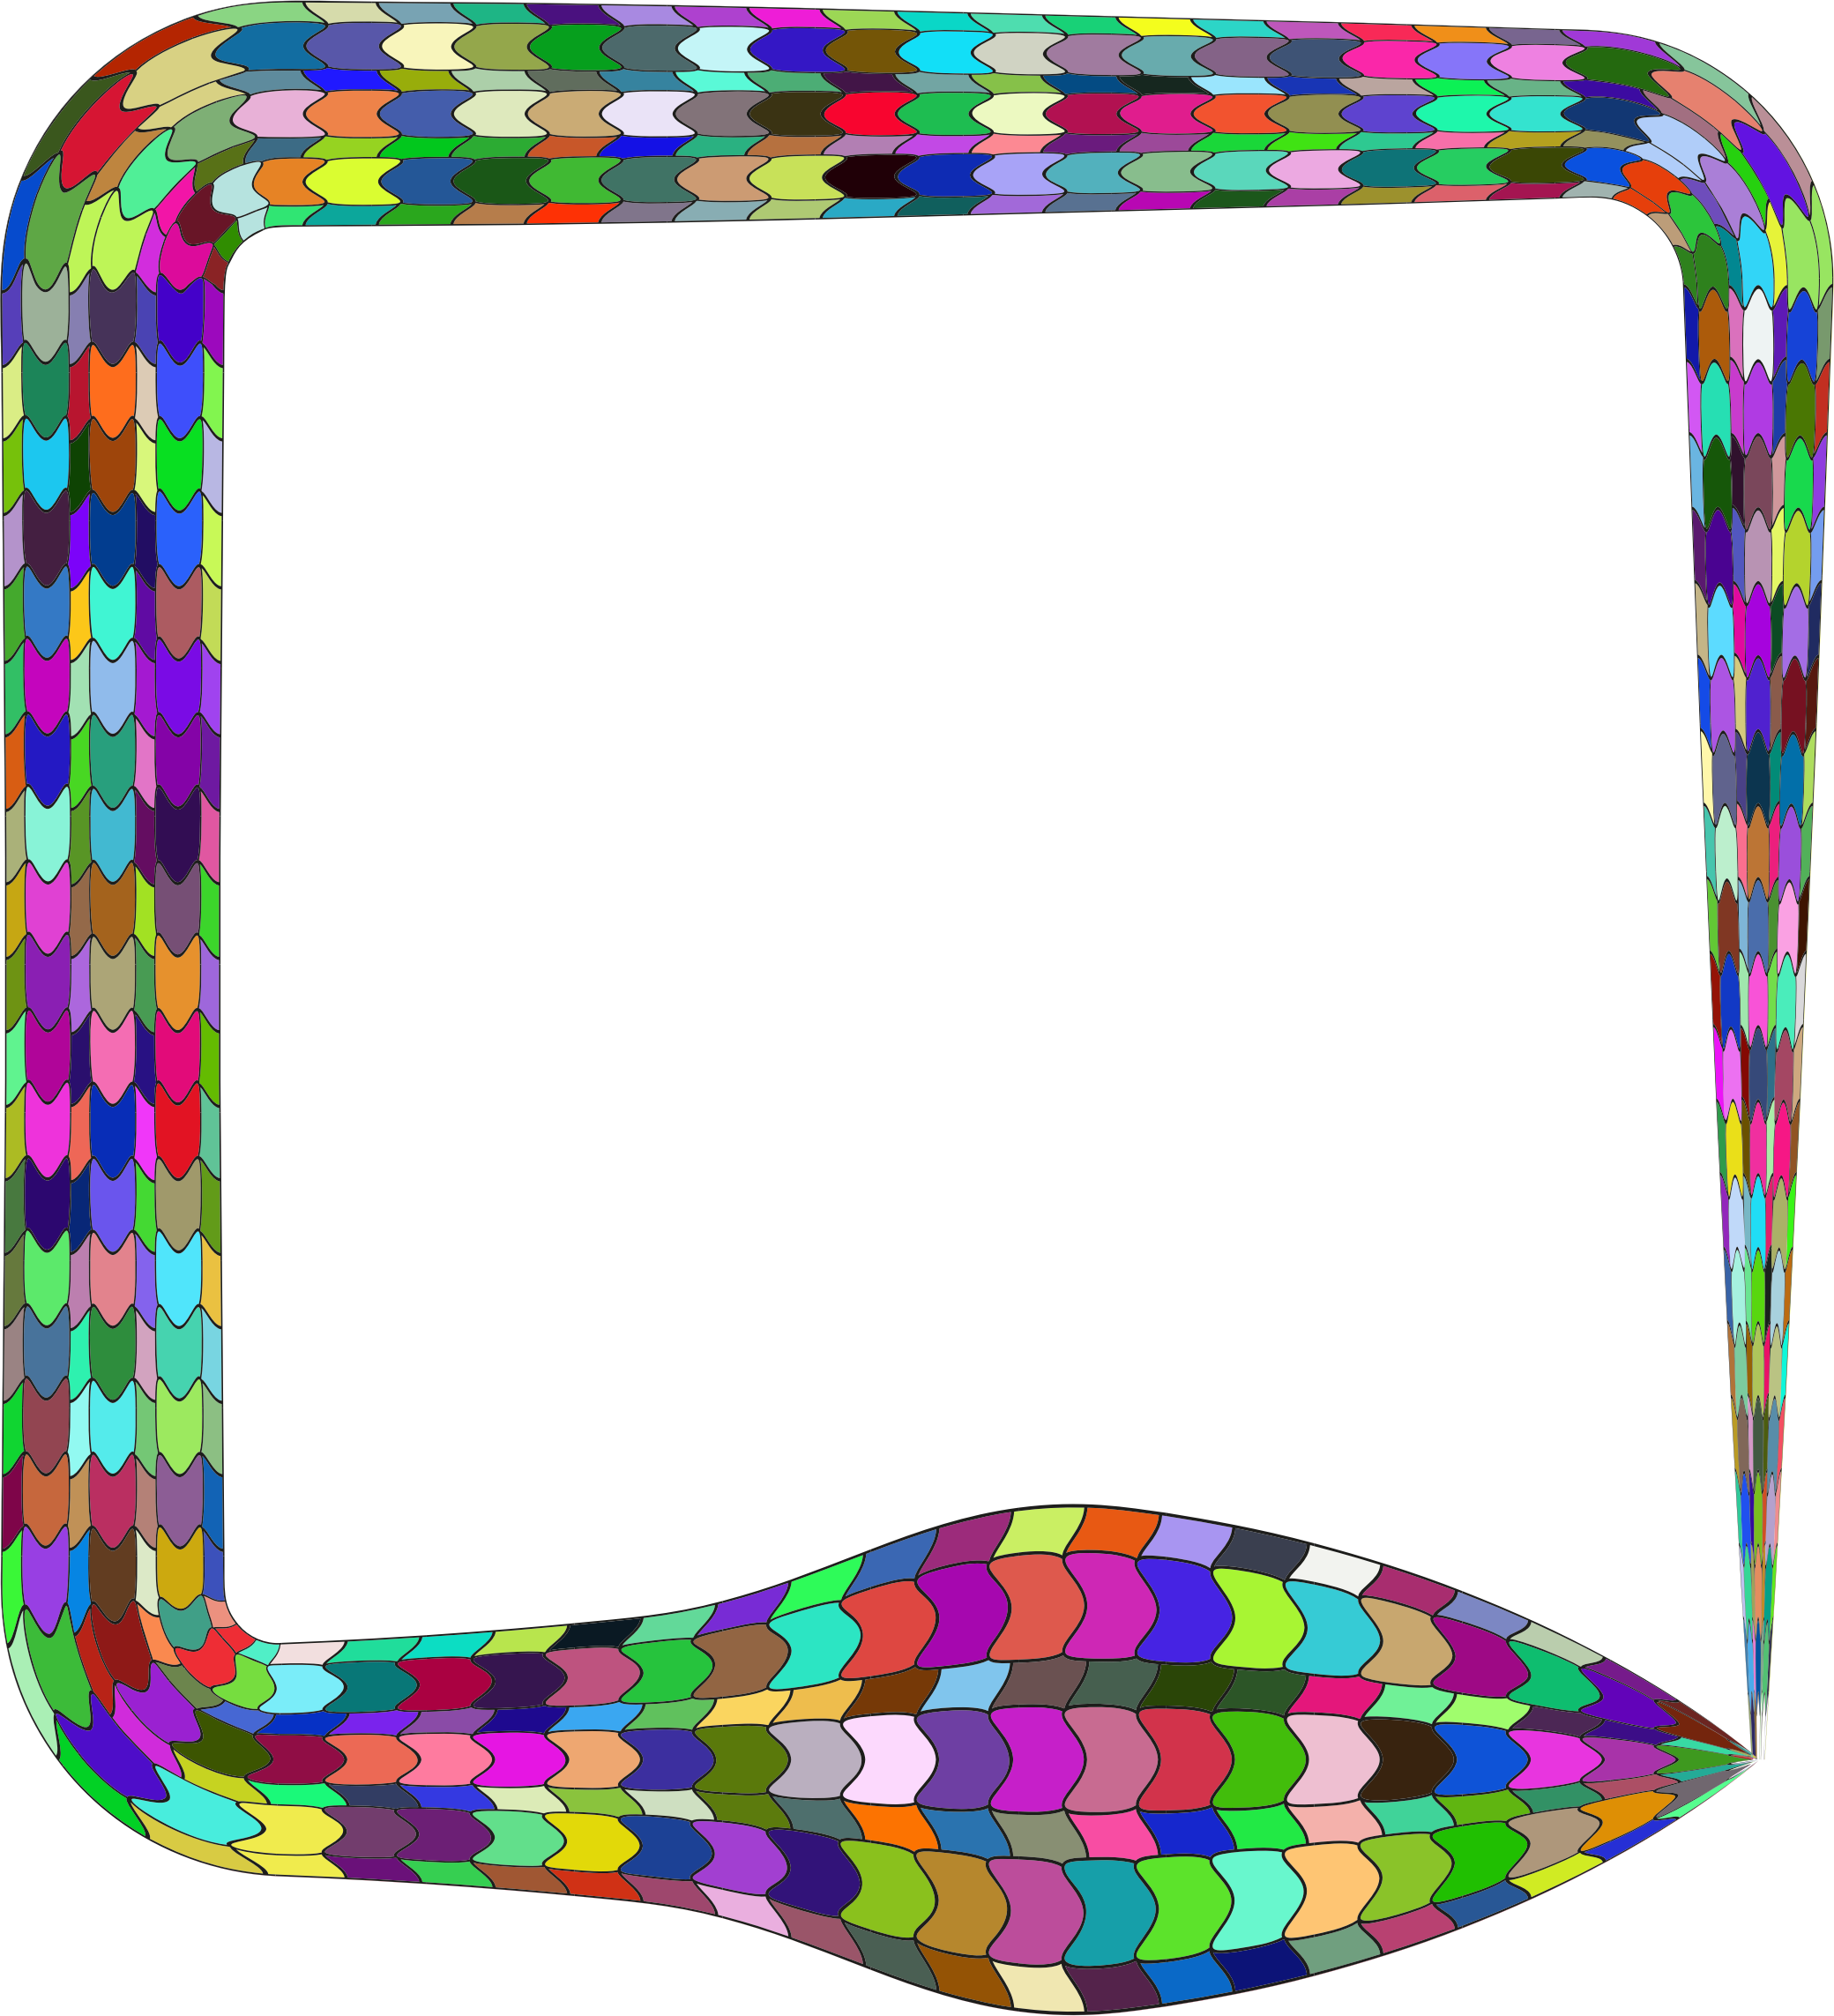 Snake Frame 2 Prismatic by GDJ